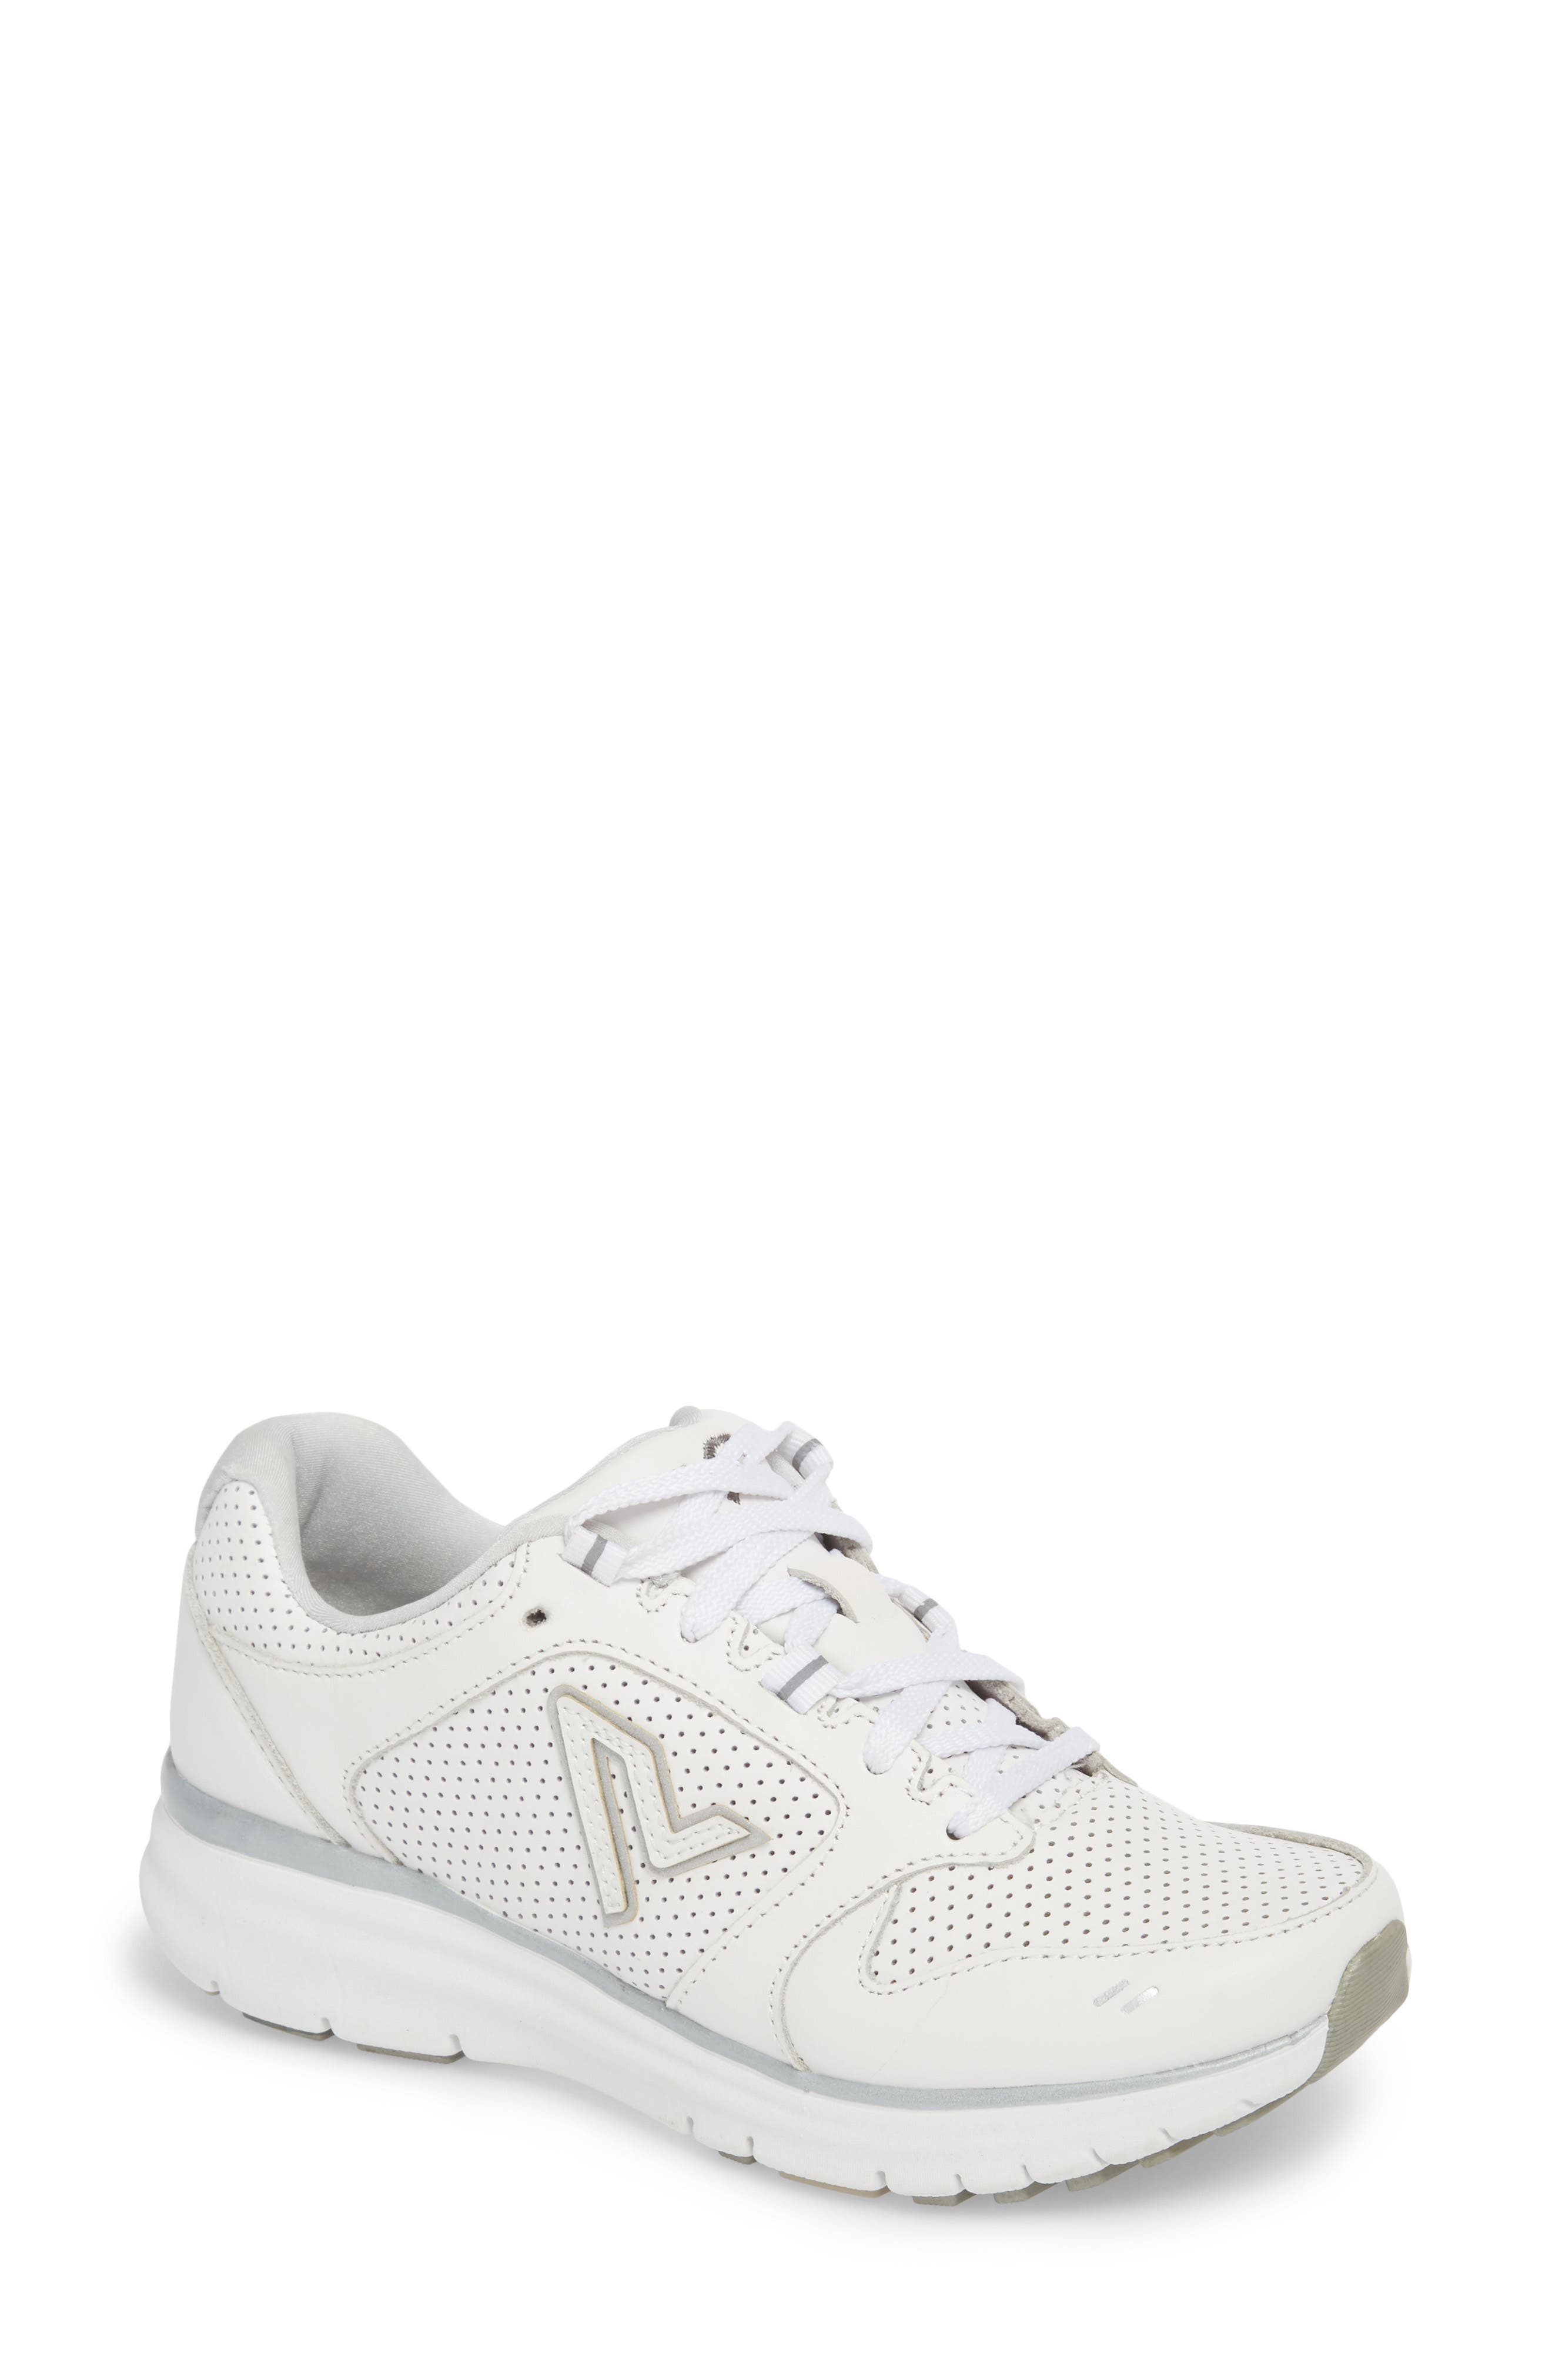 Thrill Sneaker,                             Main thumbnail 1, color,                             White Suede